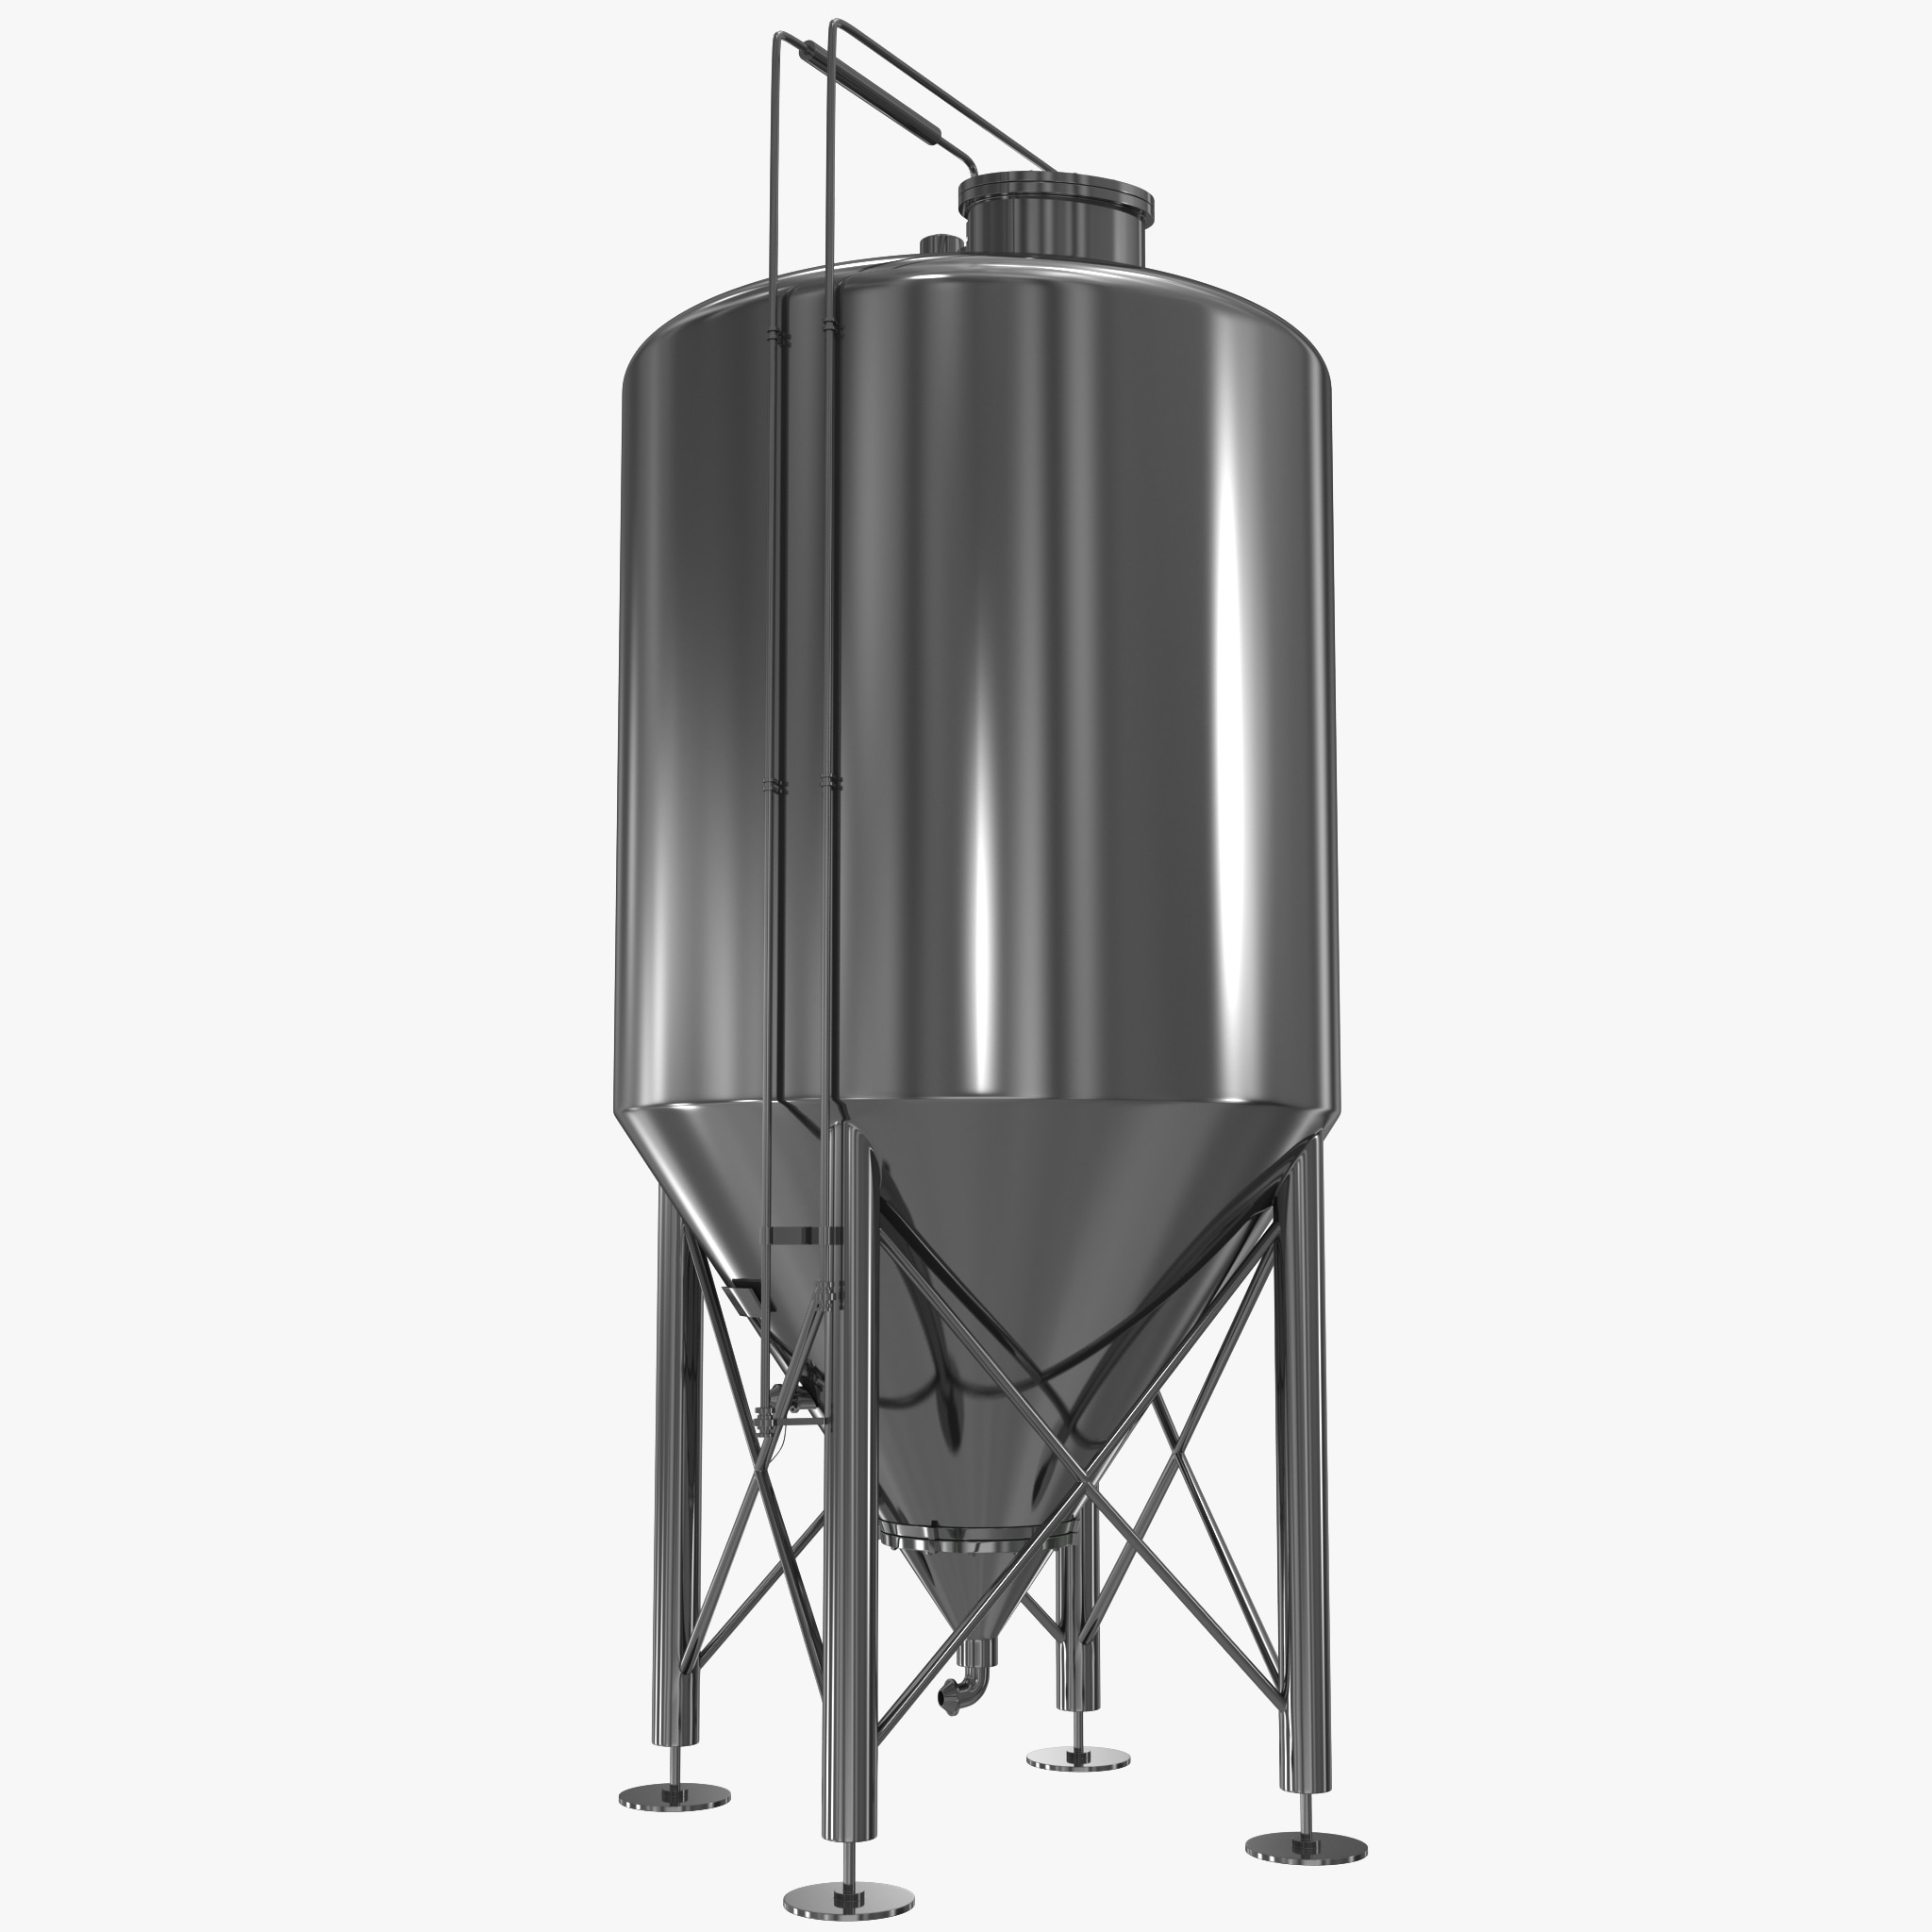 Max beer fermenter for Brewery design software